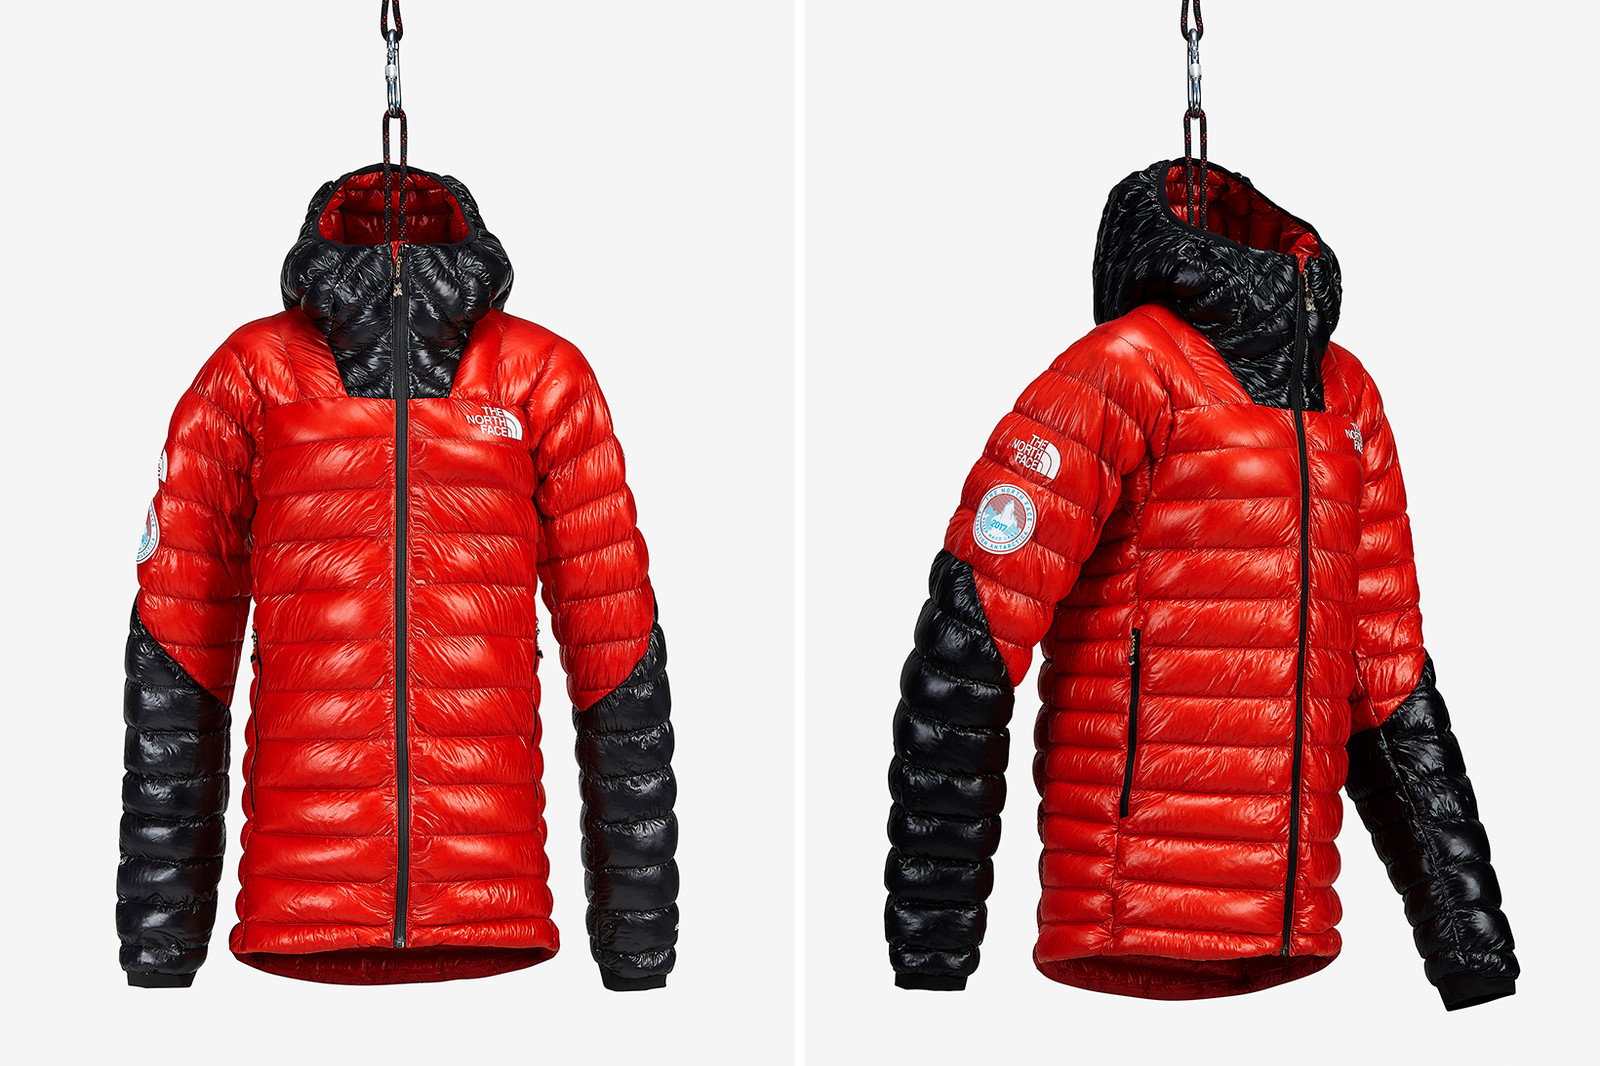 The North Face Pinnacle Archive Alps Pop-up Climbing Italy restored refurbished collection